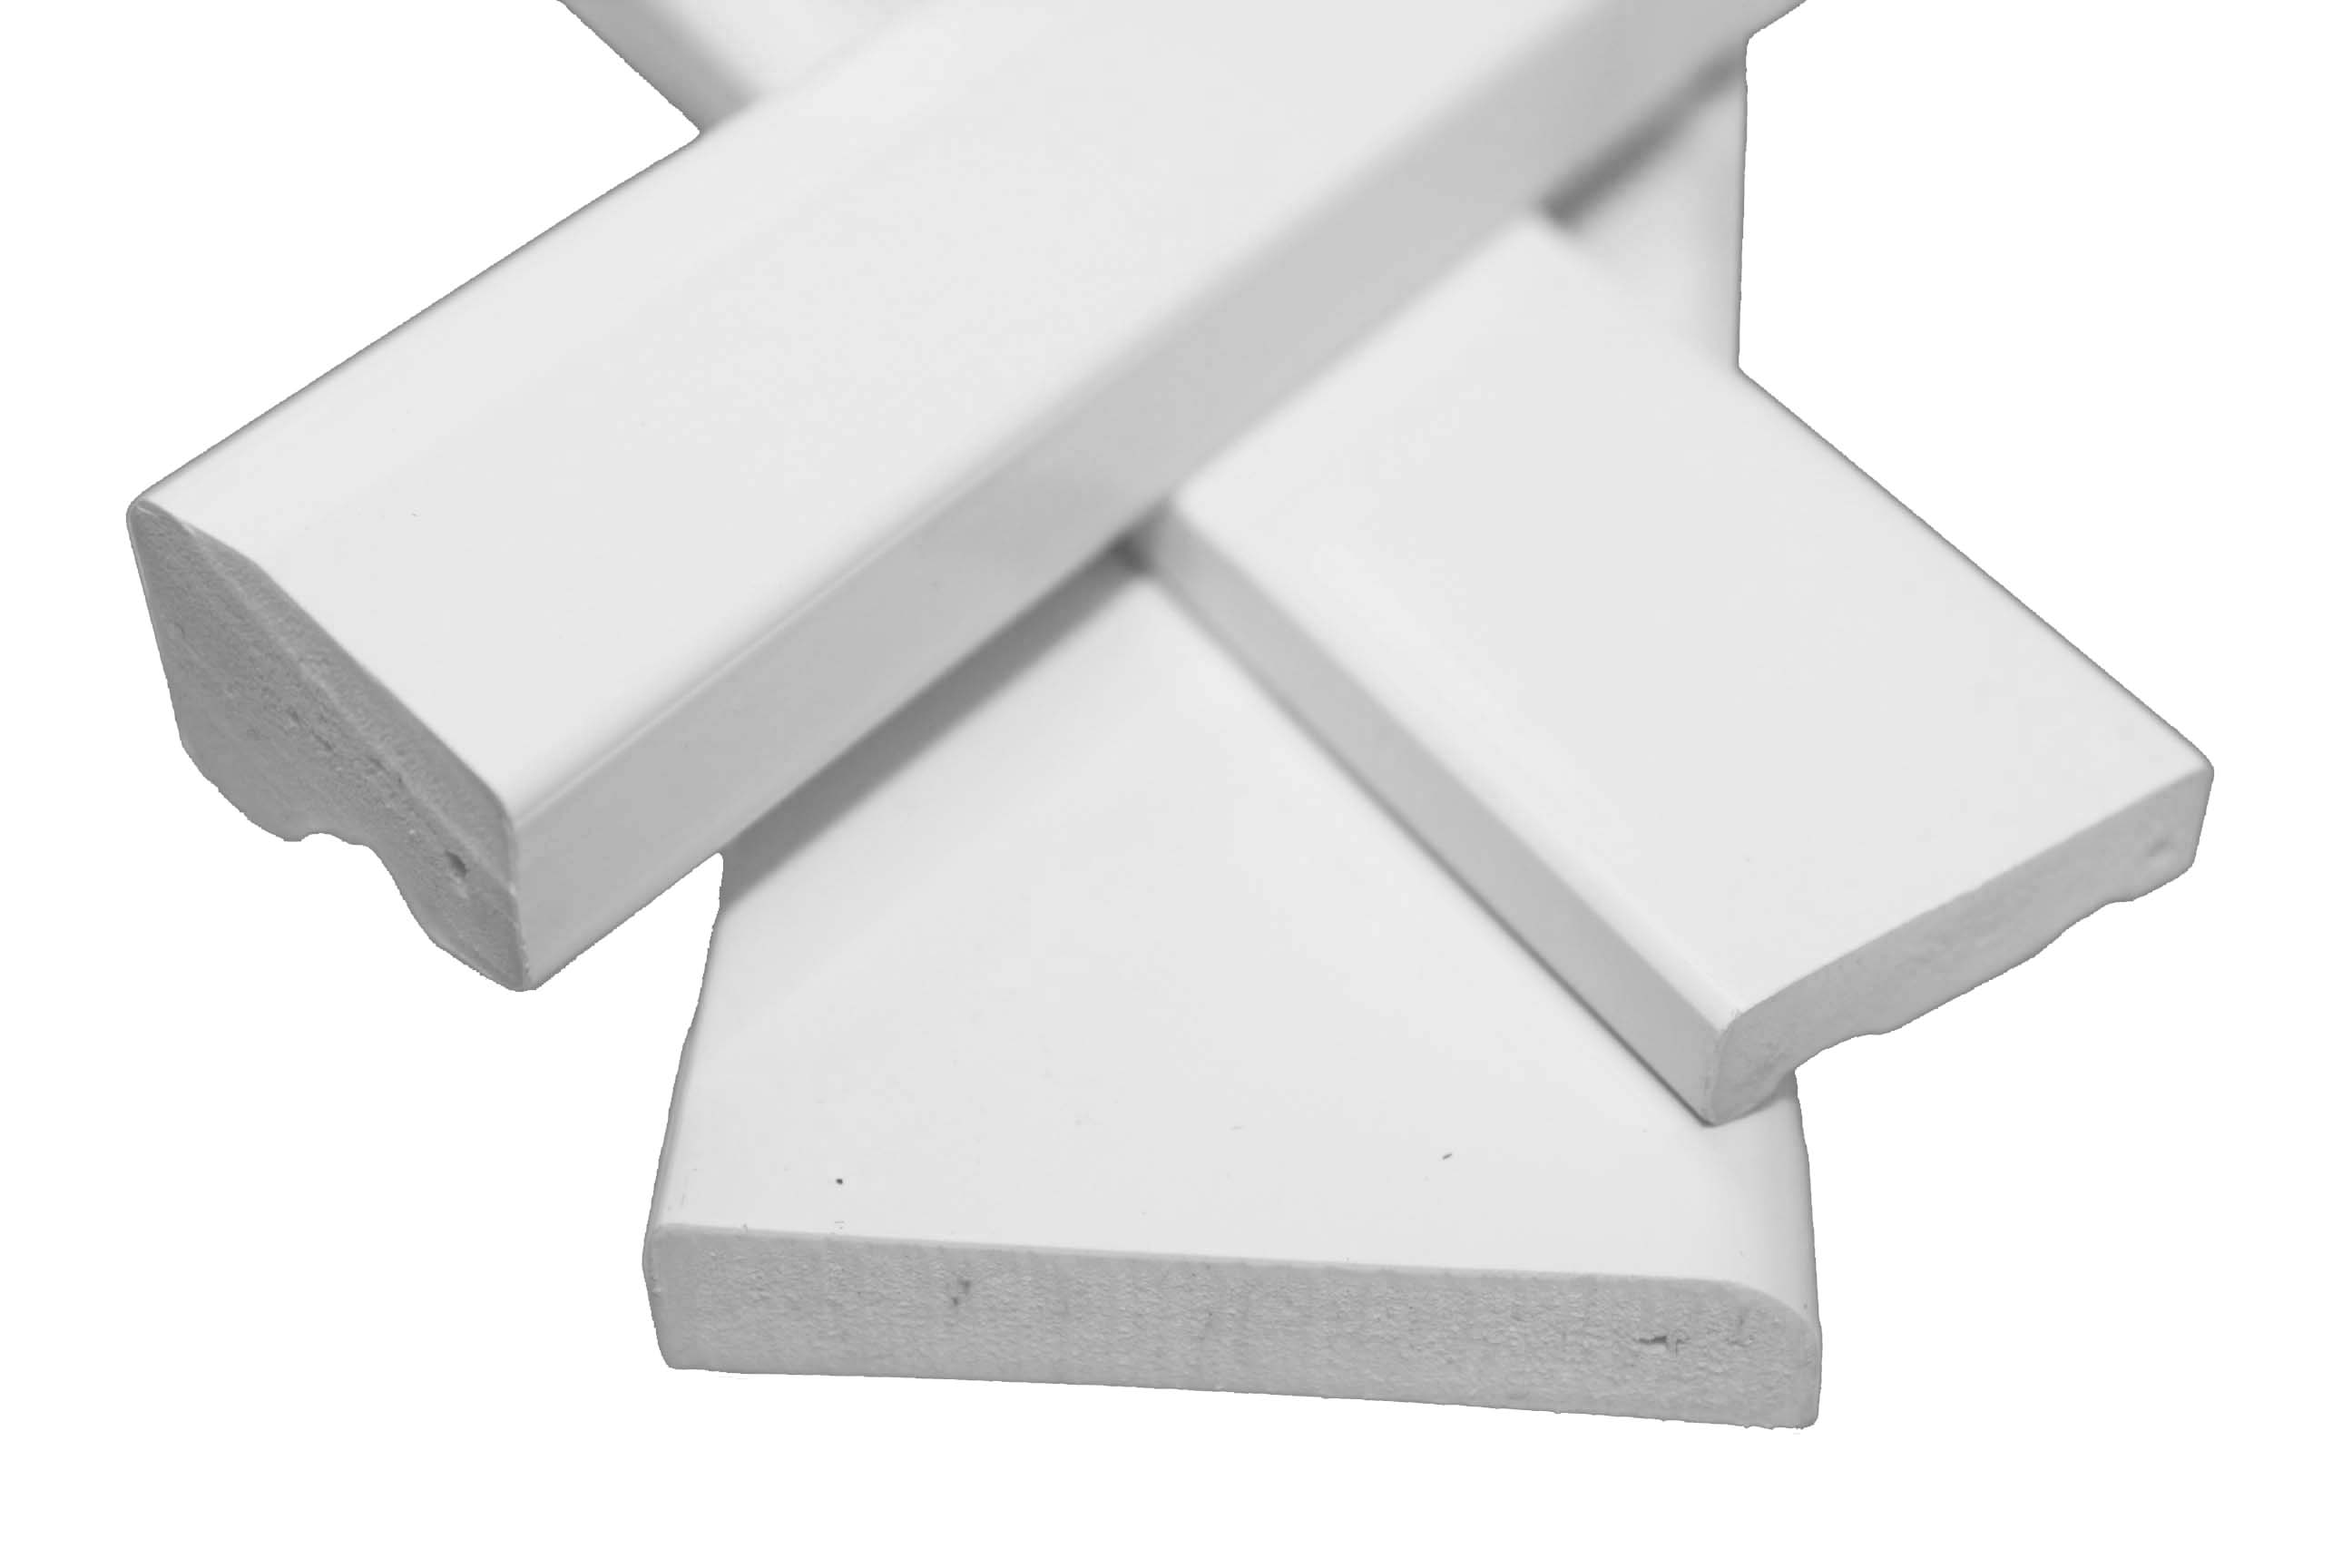 upvc window trims and architraves